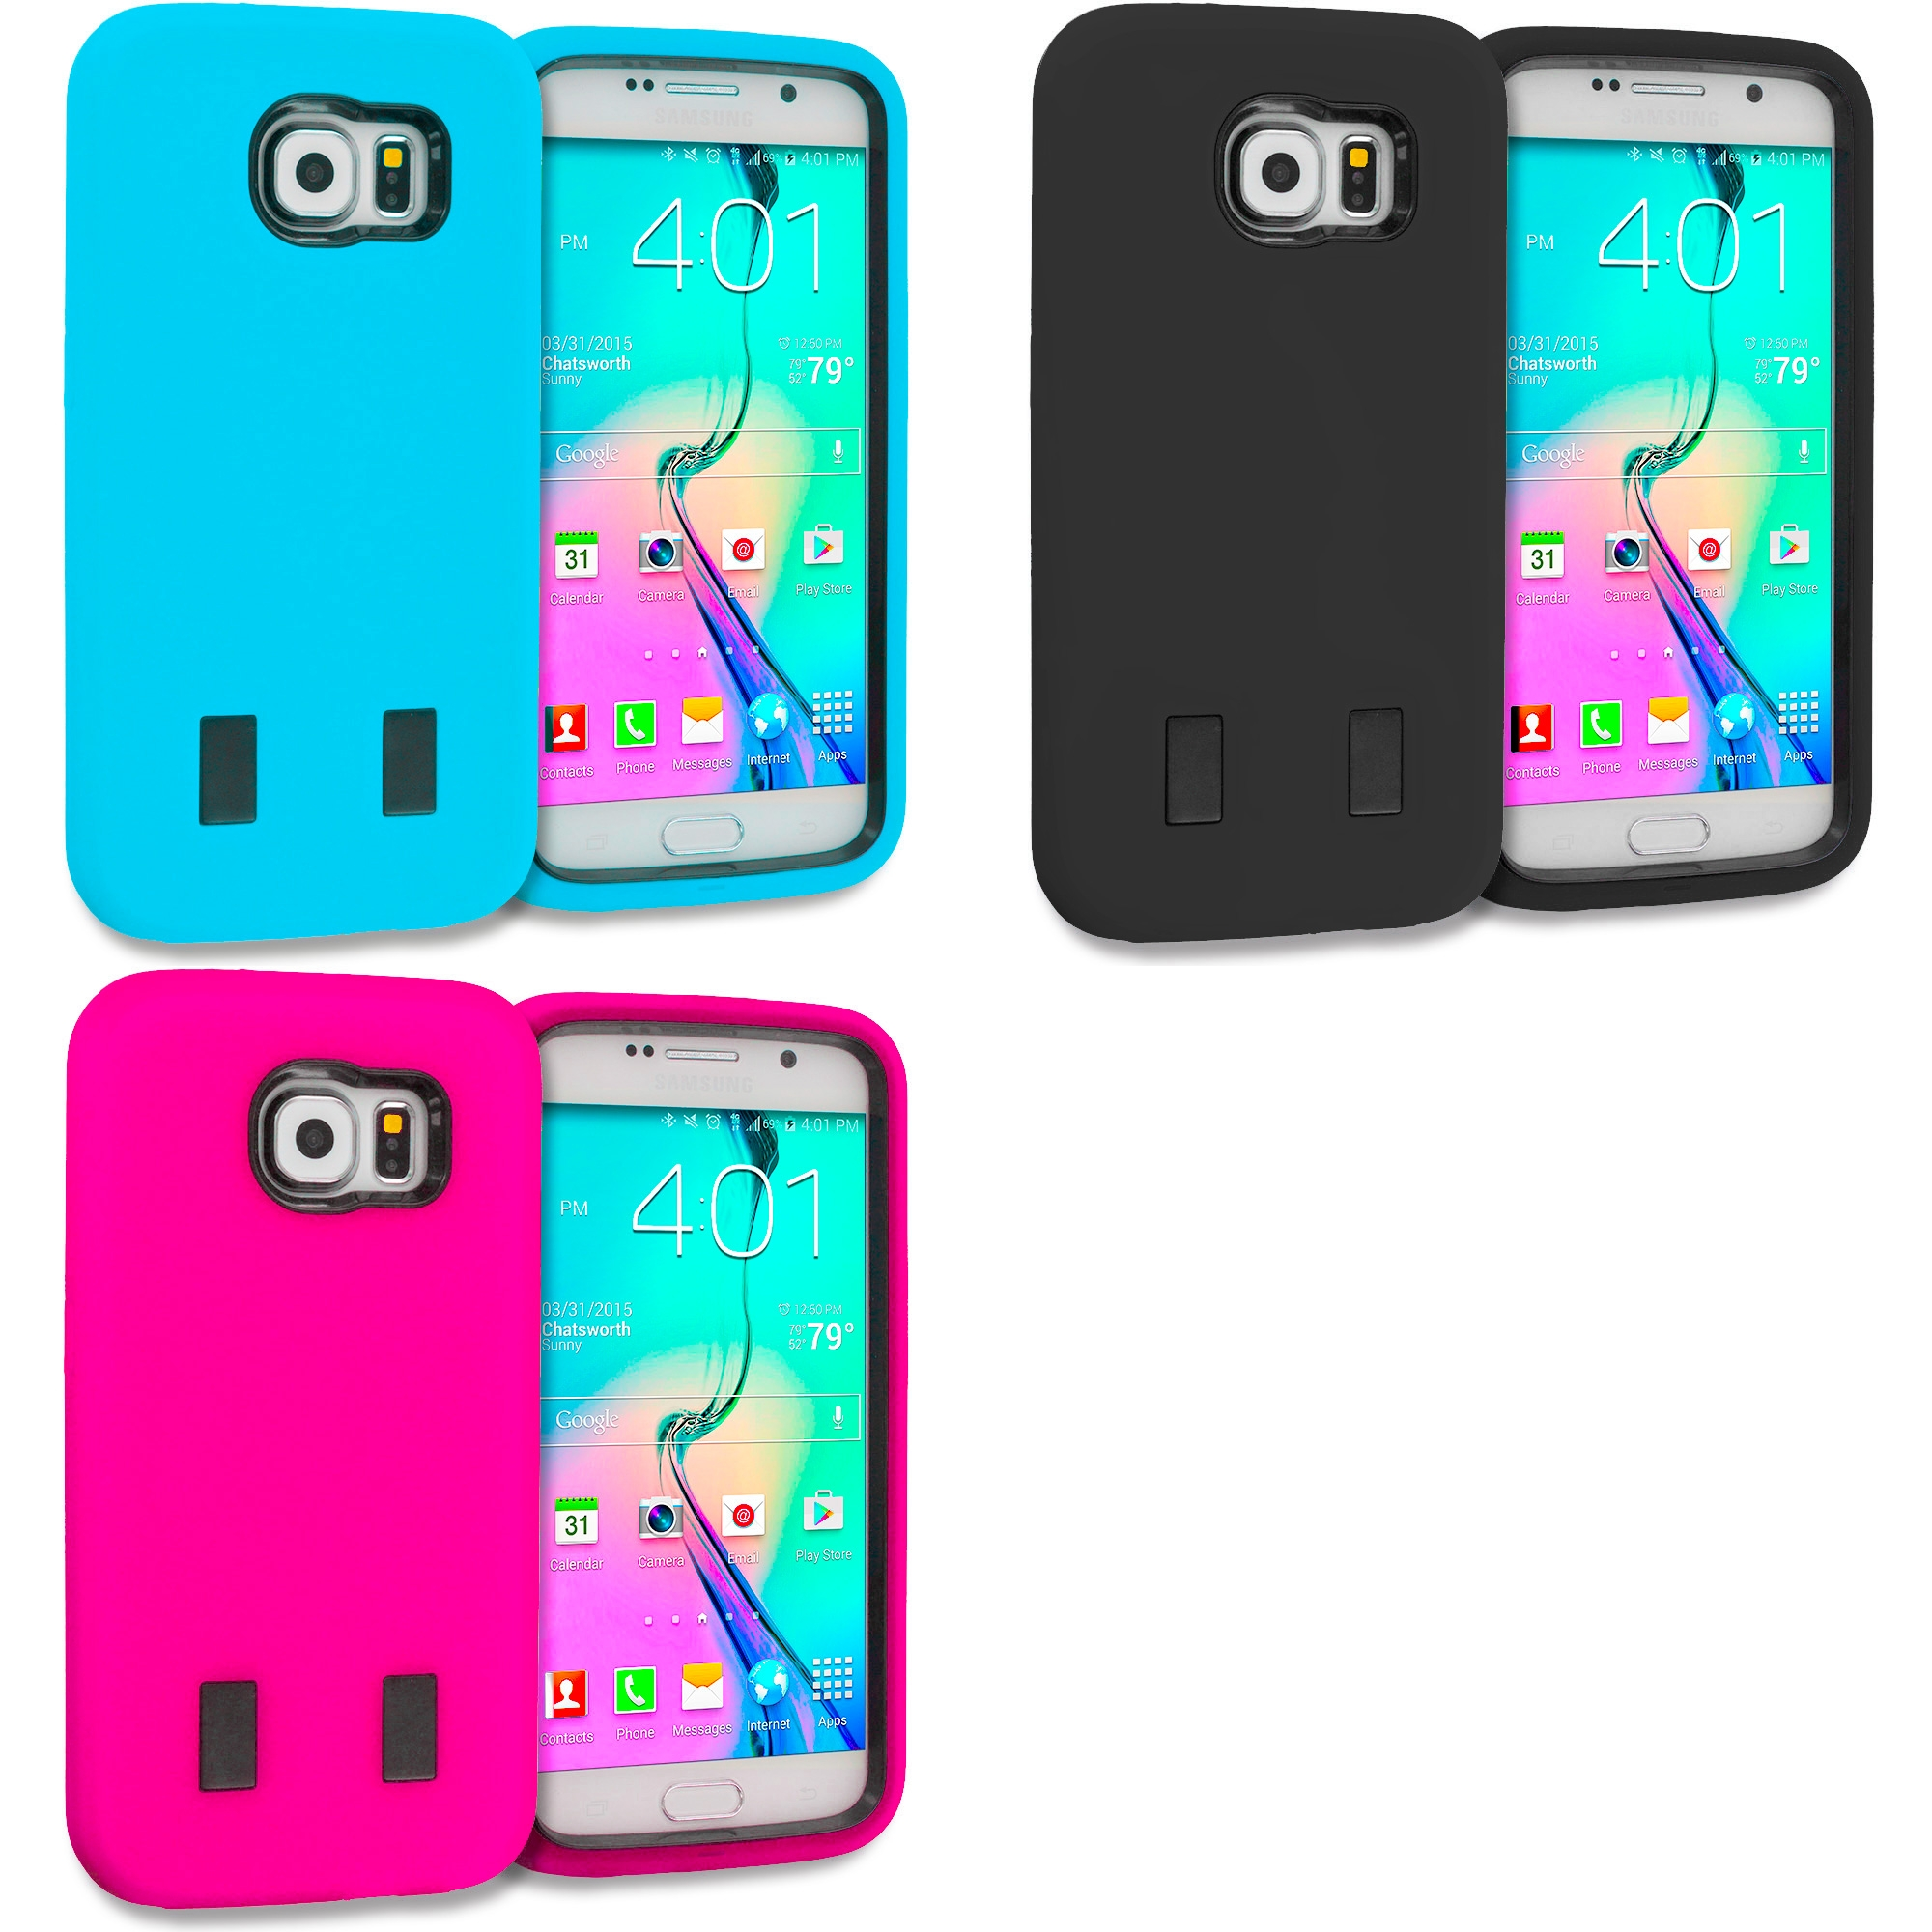 Samsung Galaxy S6 3 in 1 Combo Bundle Pack - Hybrid Deluxe Hard/Soft Case Cover